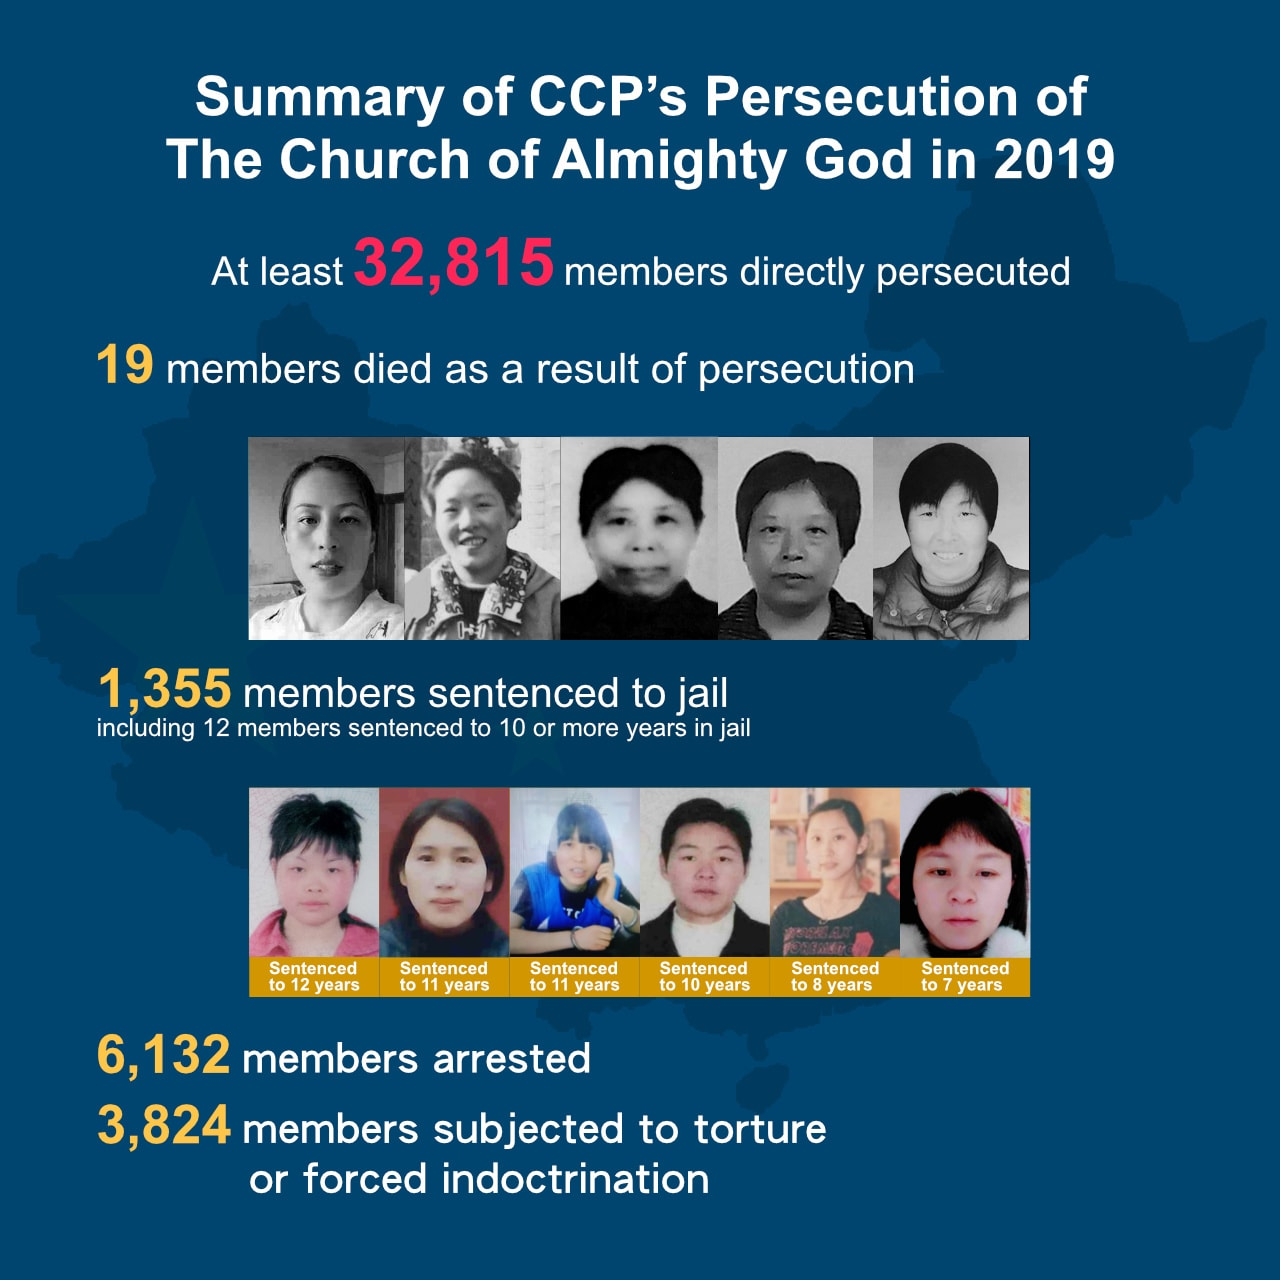 summary of CCPs persecution of the church of the almighty god